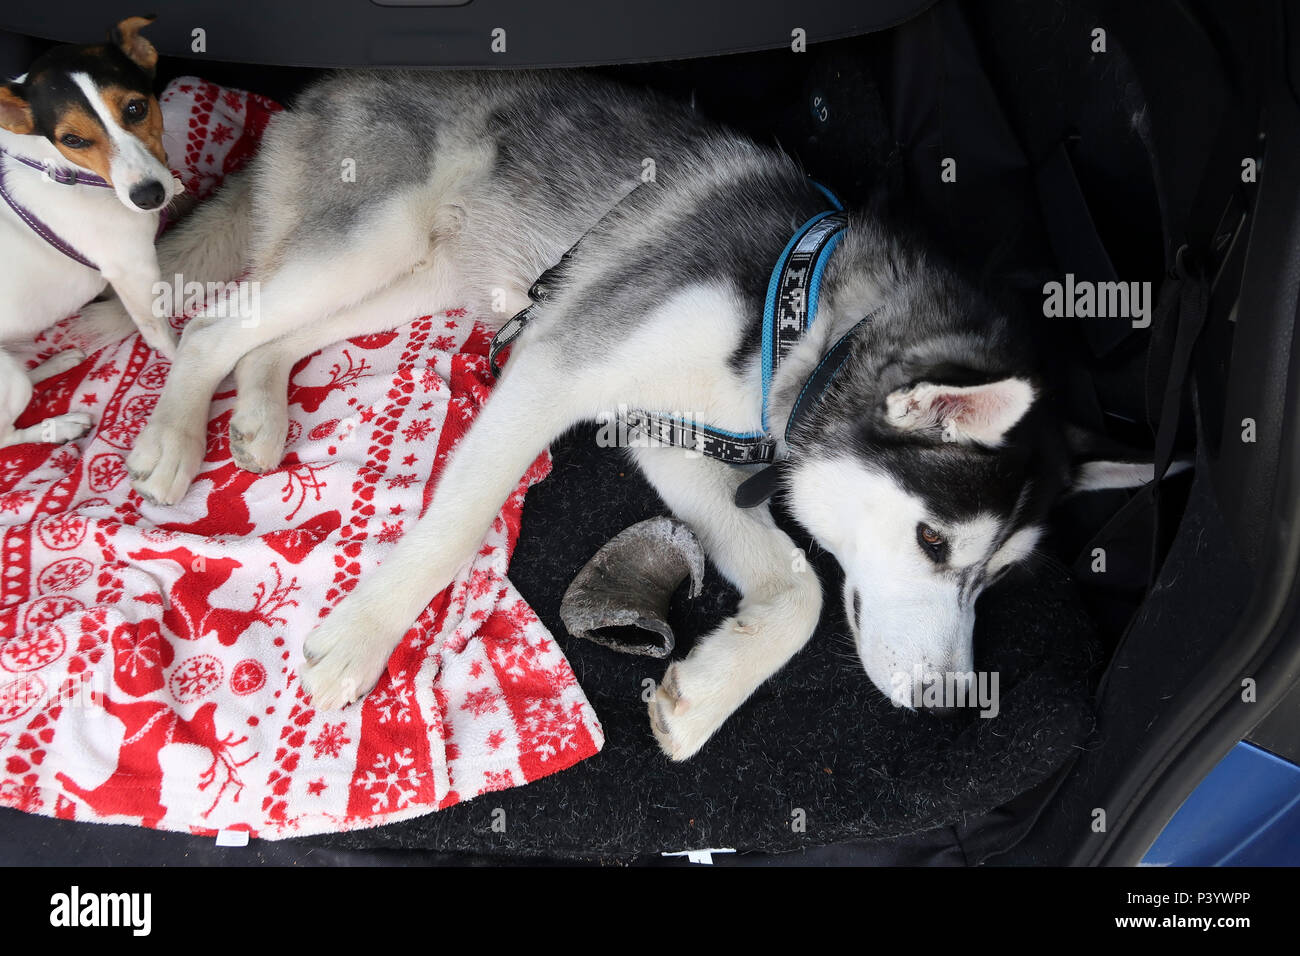 Dogs lying in car boot - Stock Image